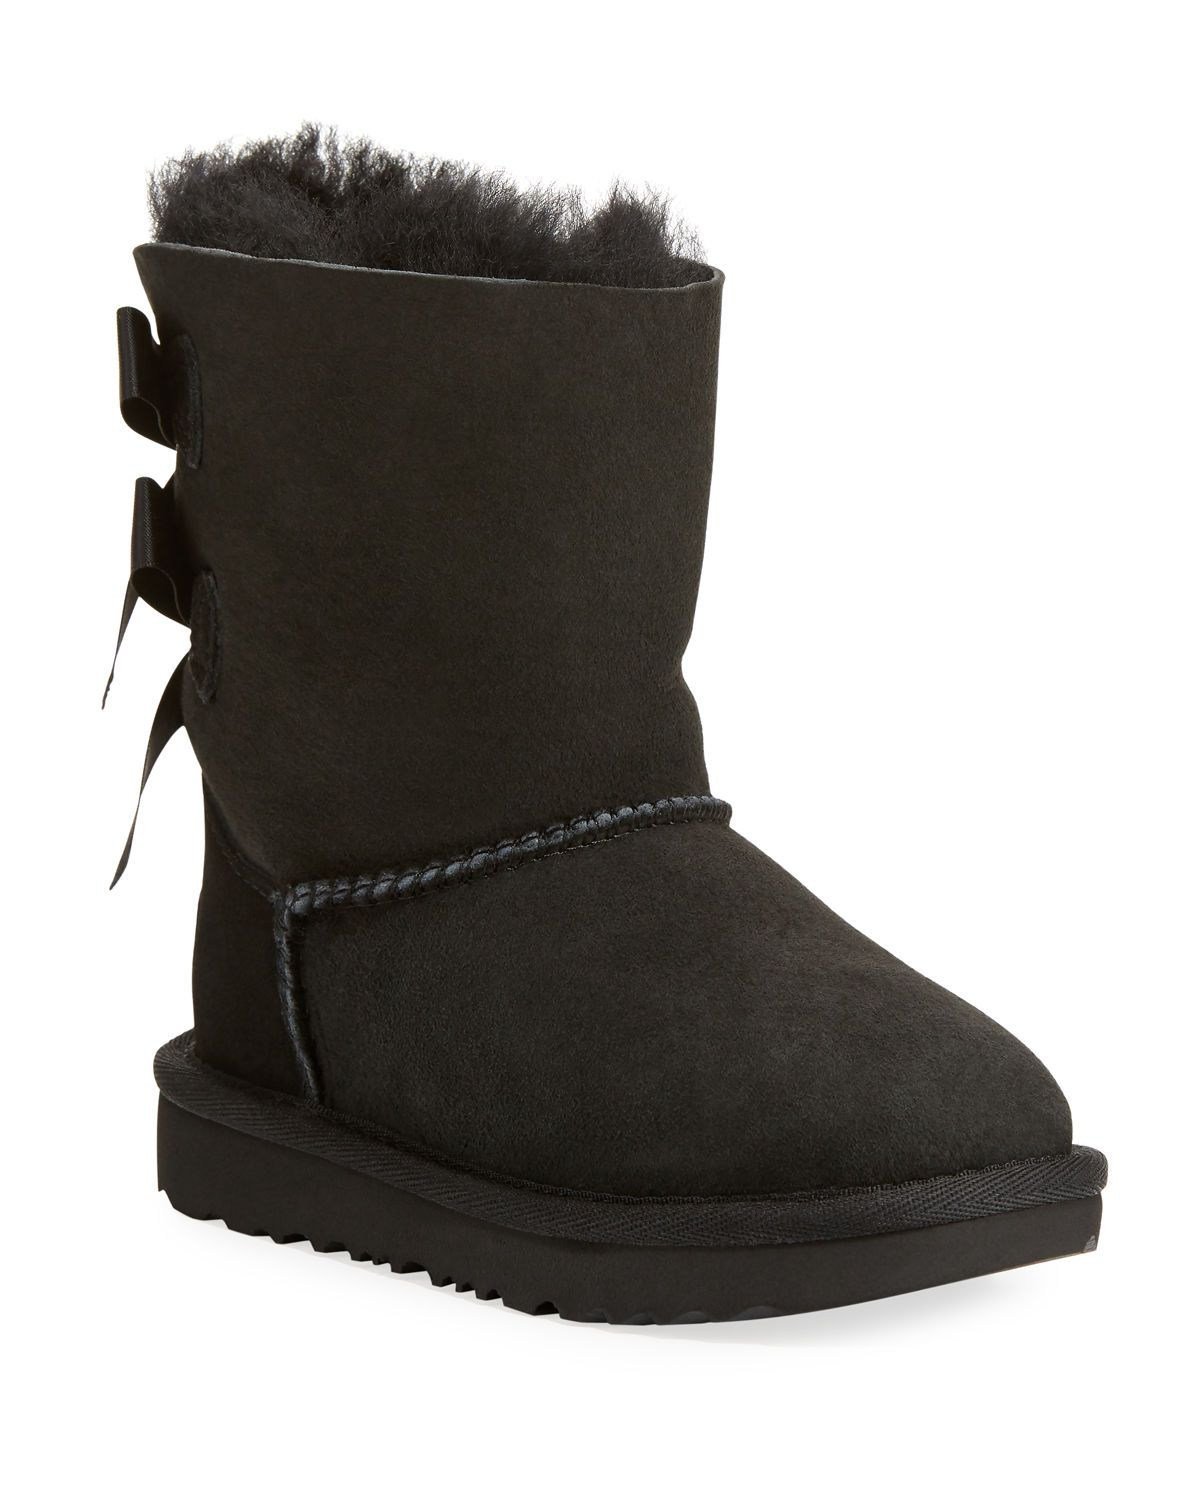 Bailey Bow II Boot, Toddler Sizes 6-12